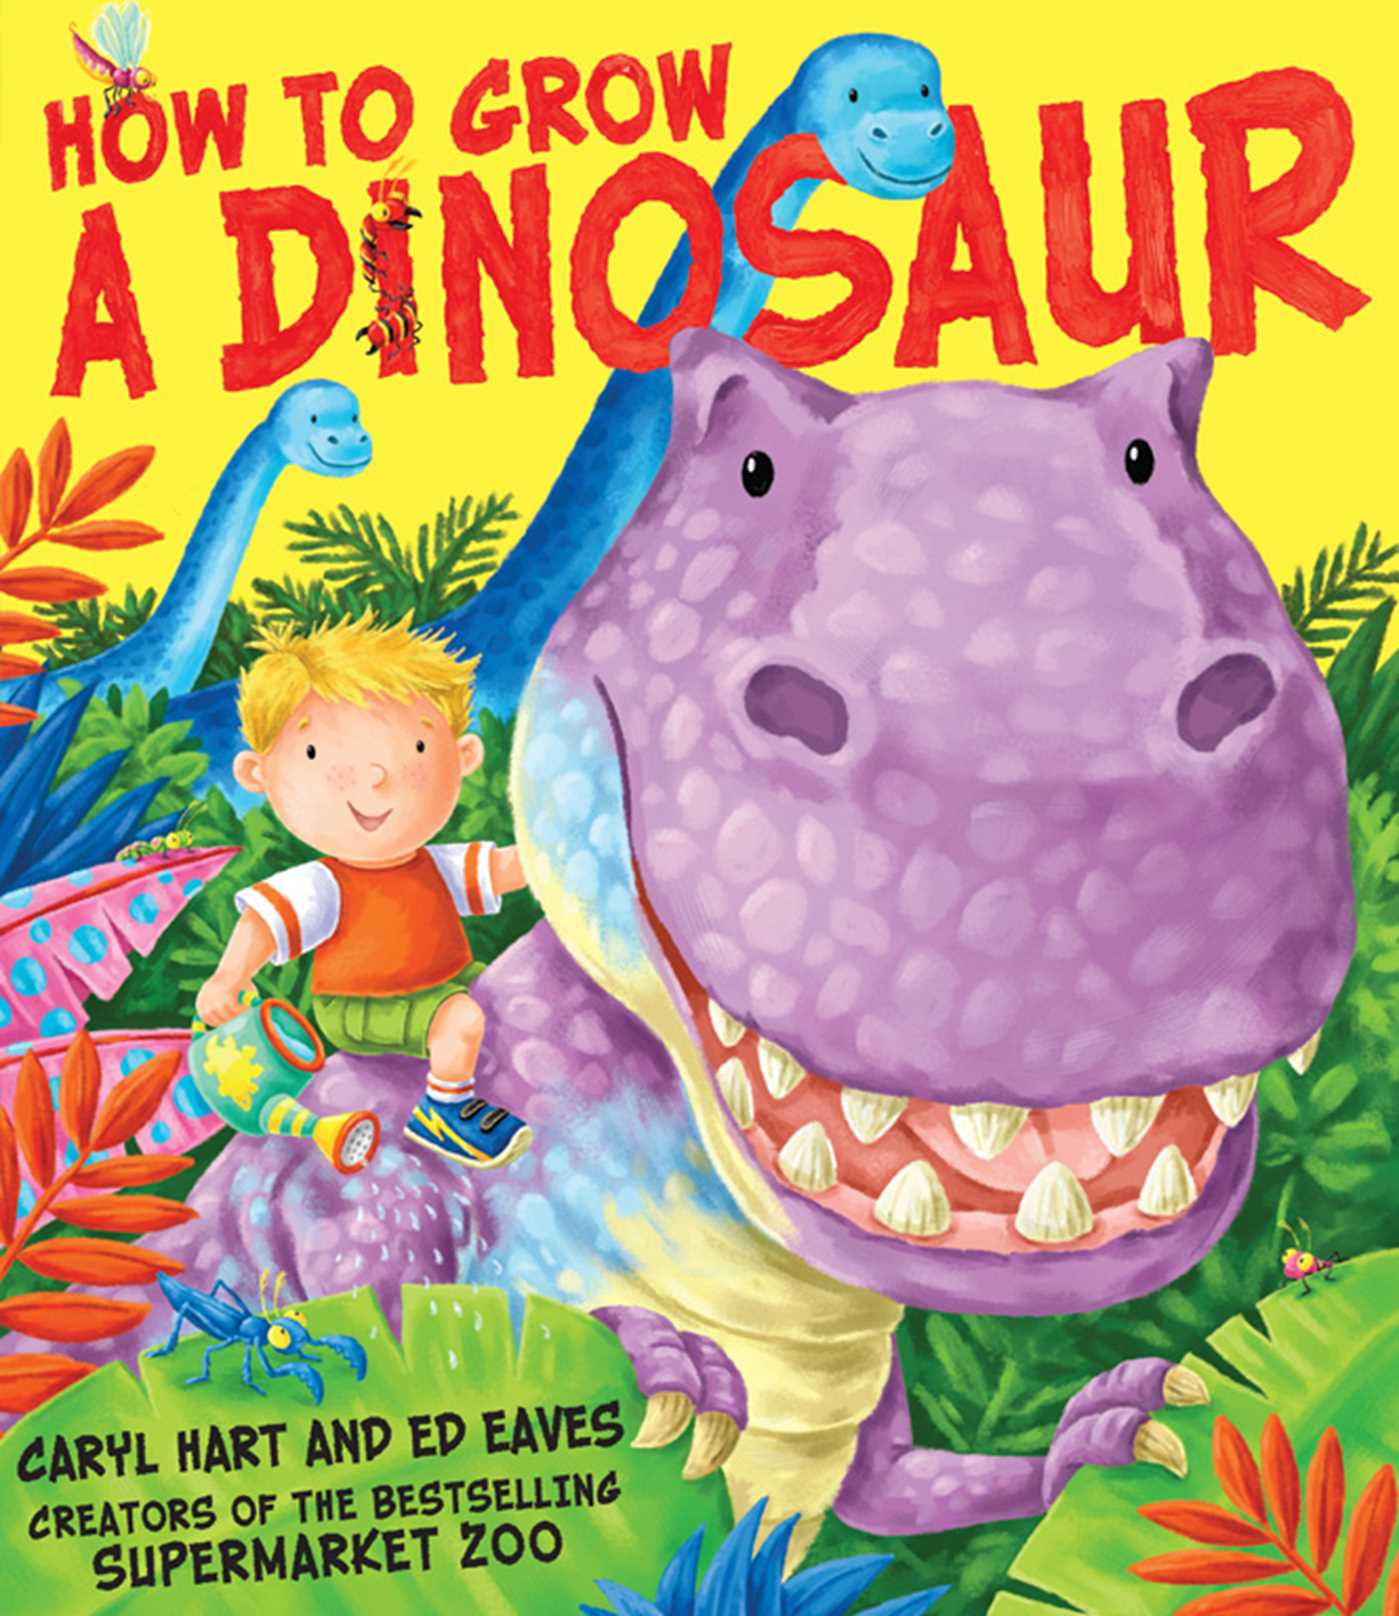 Book Cover Image (jpg): How To Grow A Dinosaur